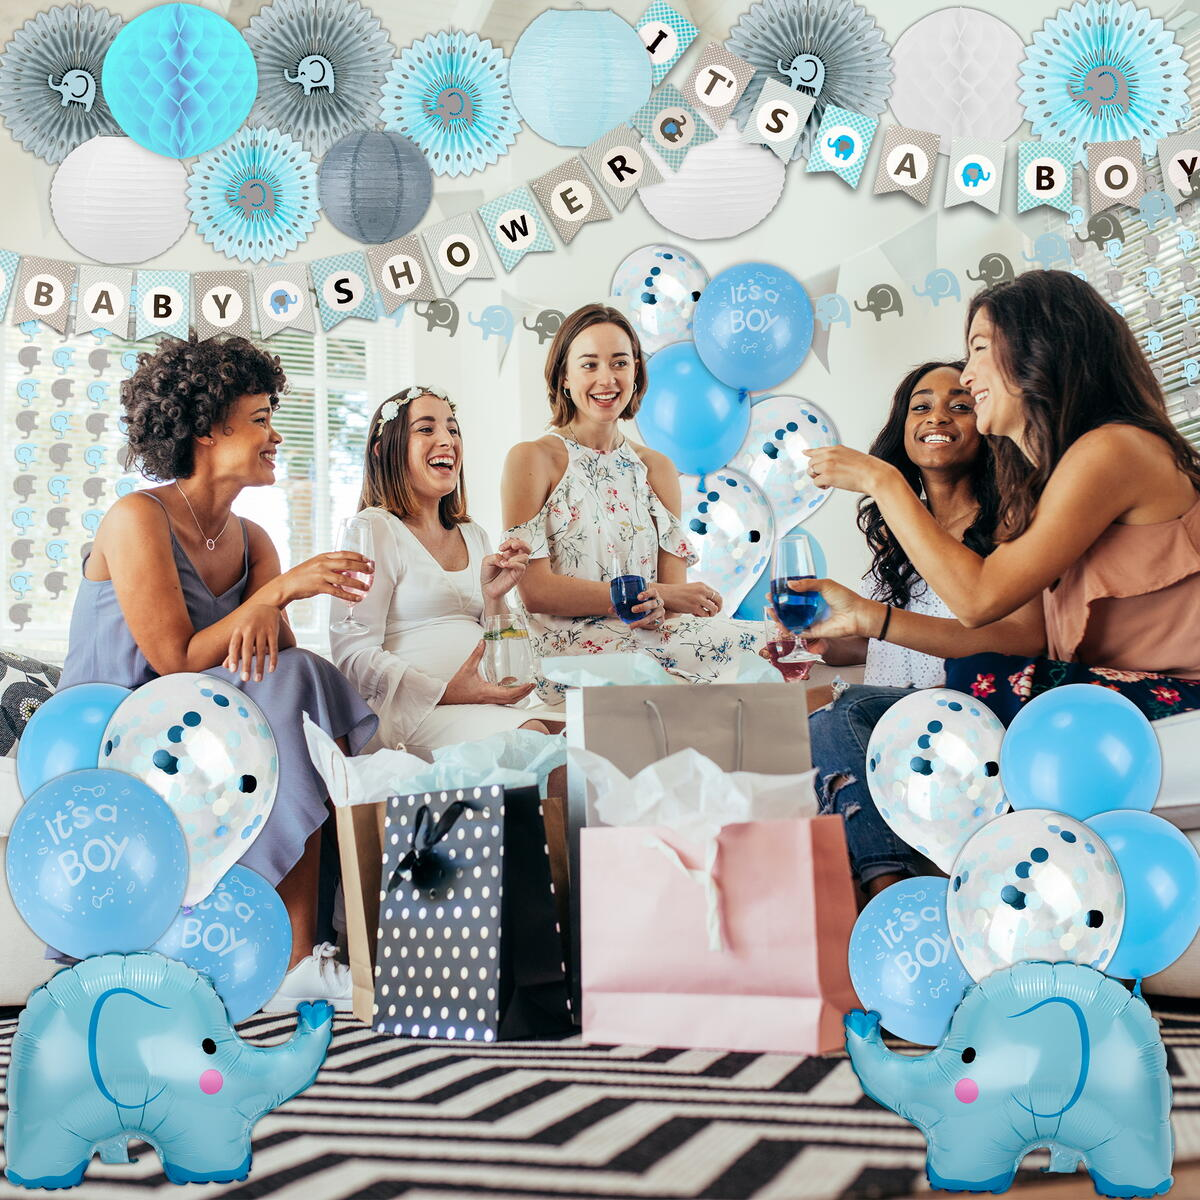 Glamrizz 164 Piece Elephant Baby Shower Decorations for Boy - It's a Boy Baby Shower Banners, 90 Elephant 10 PC Backdrop Garlands, Balloons, Cake Toppers, Blue Themed Baby Shower Boy Decorations